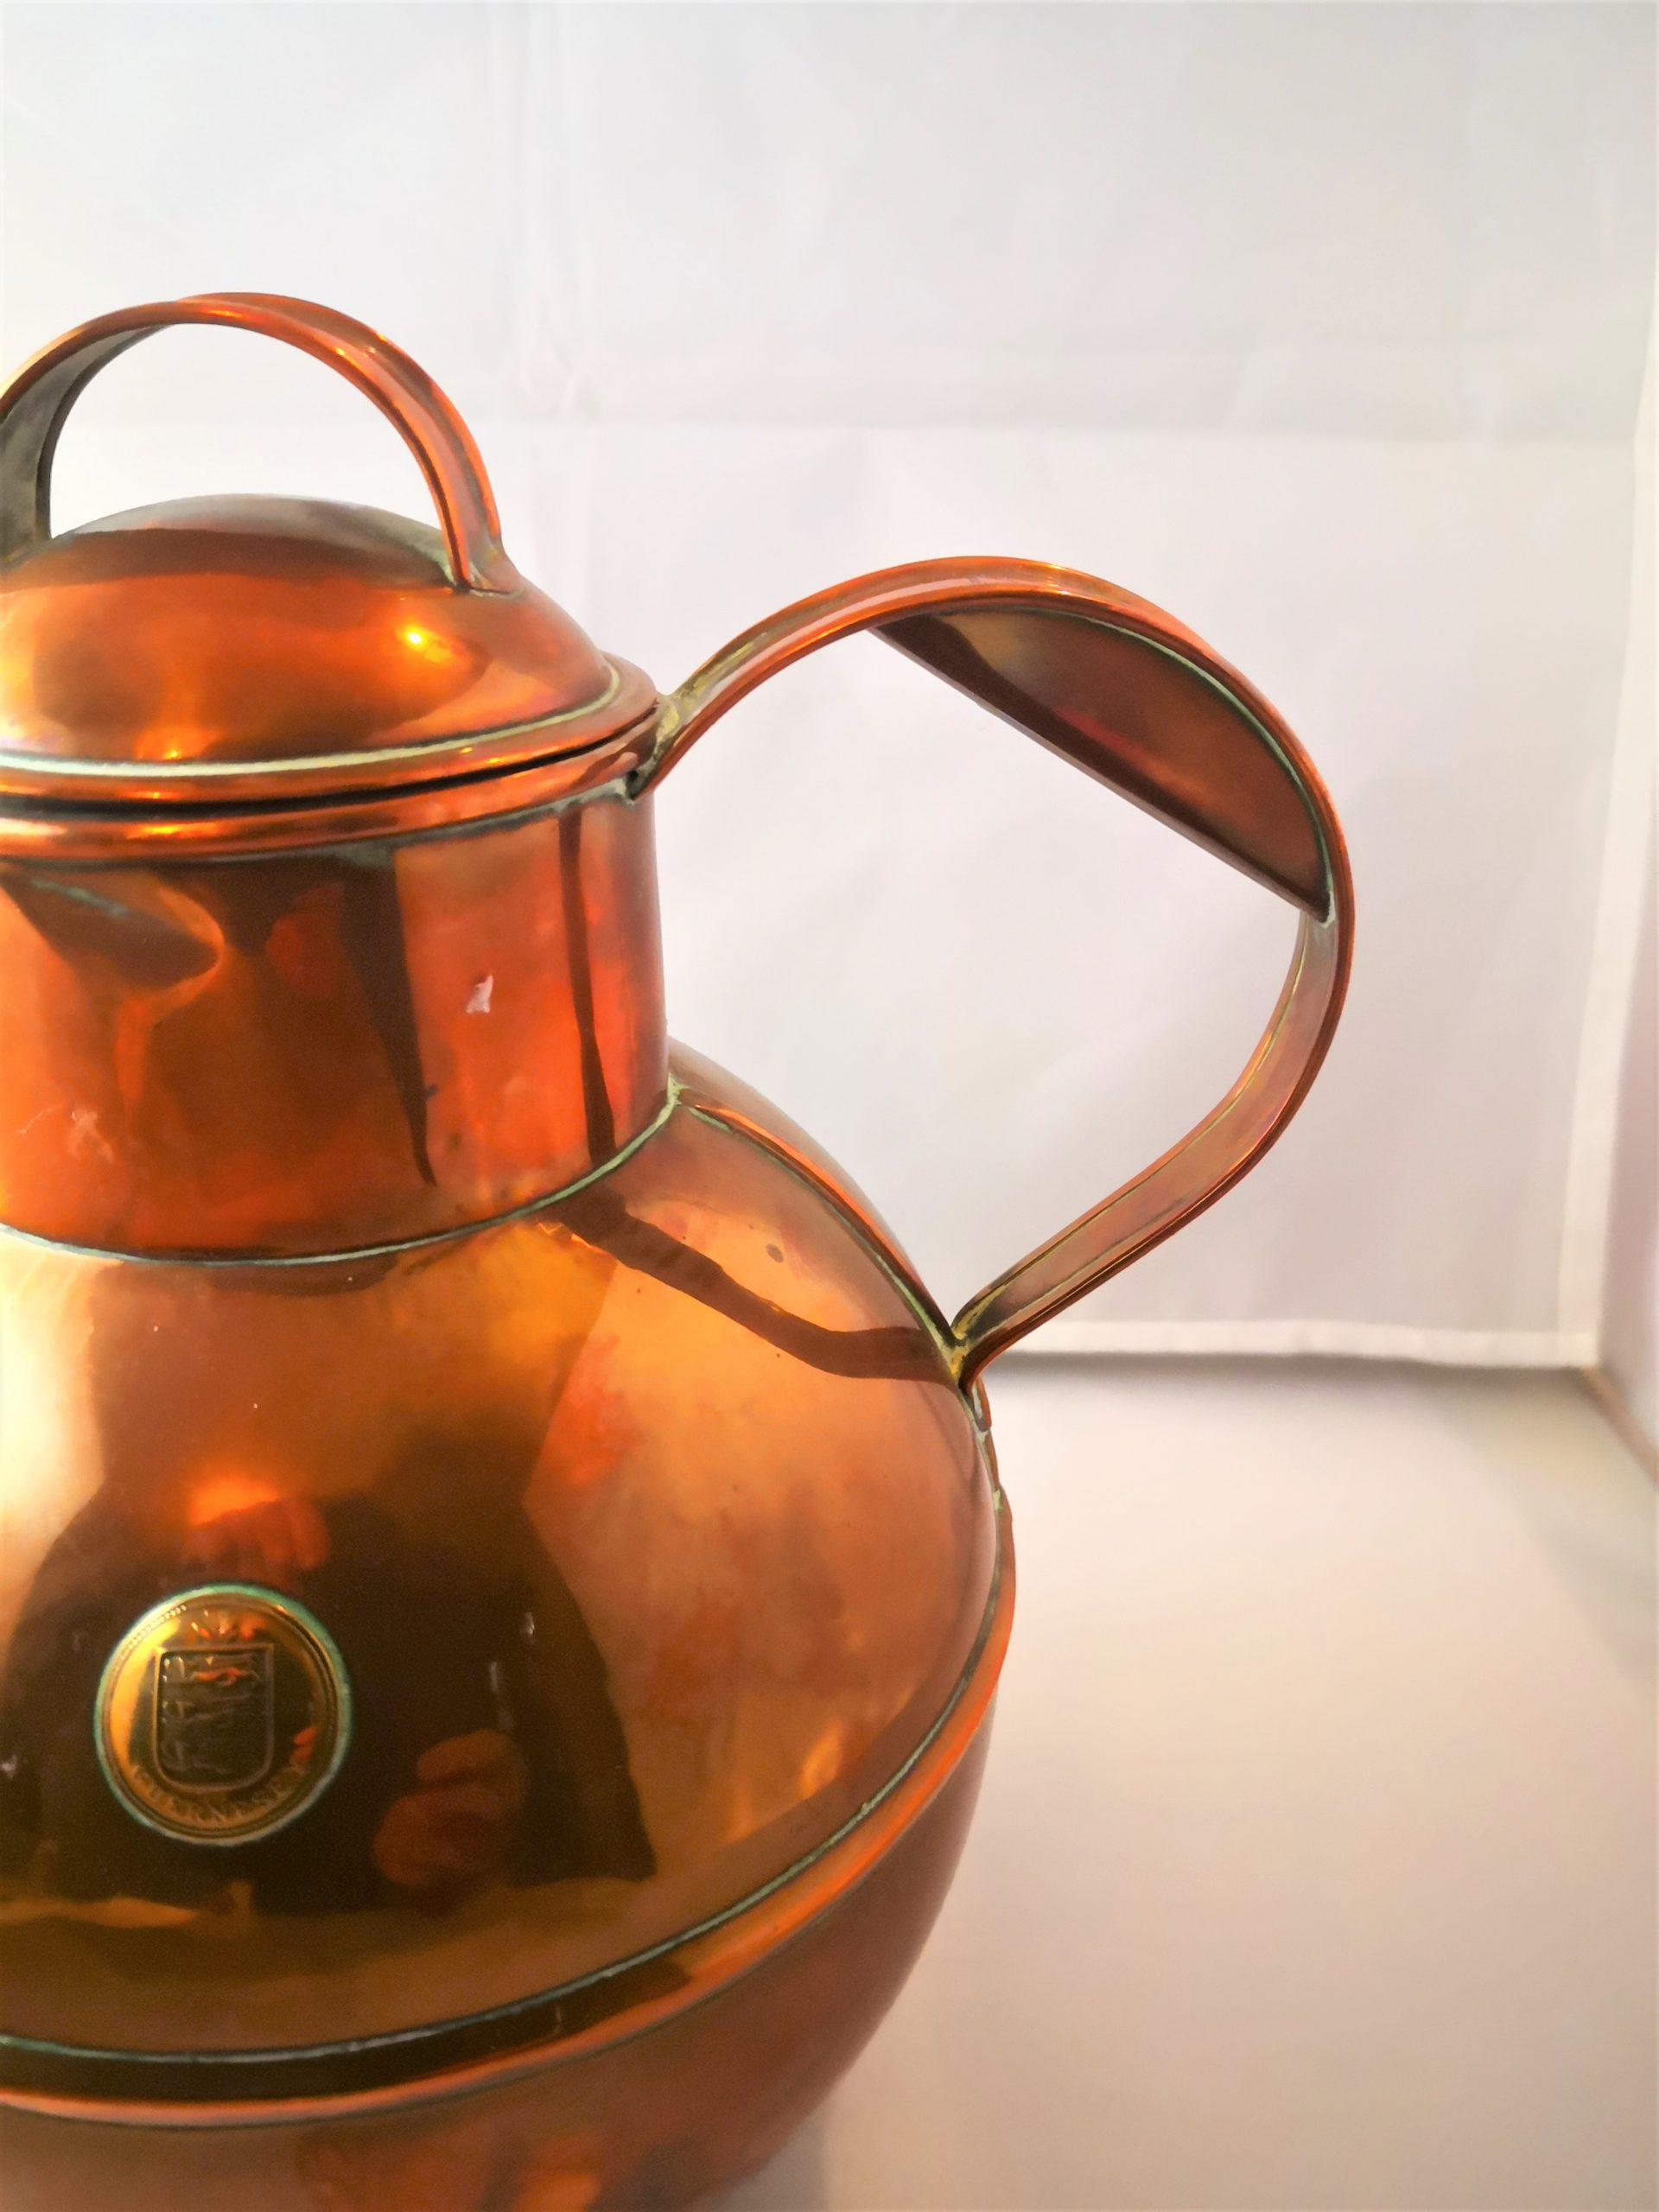 Antique C A Martin & Sons of Guernsey copper jug with lid at Antik Seramika